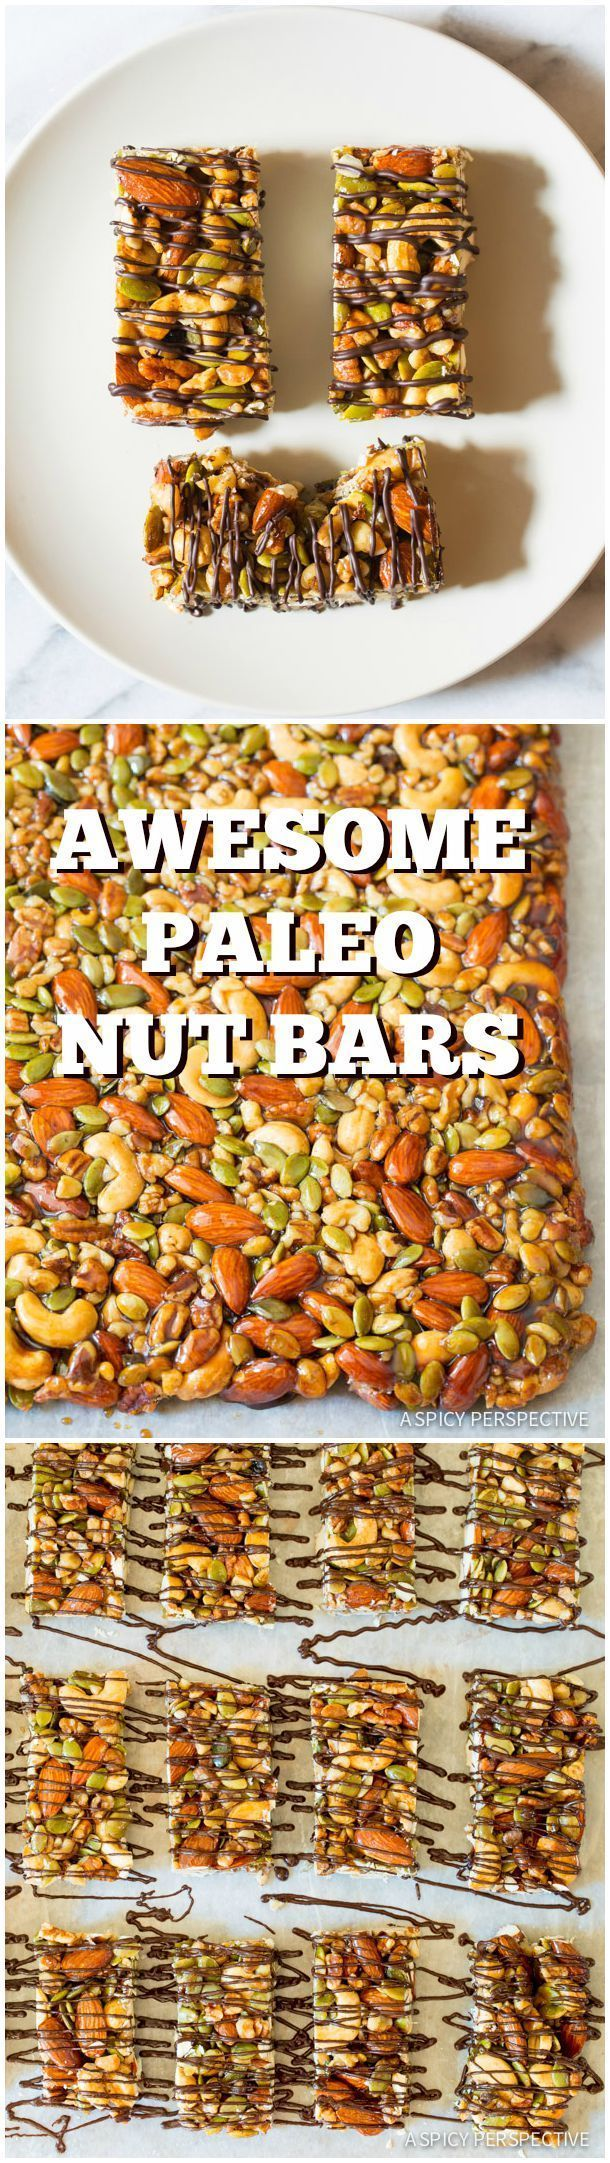 Crazy Over These Kid-Friendly Paleo Nut Bar Recipe with Chocolate Drizzle on ASpicyPerspective... #paleo #vegan #glutenfree